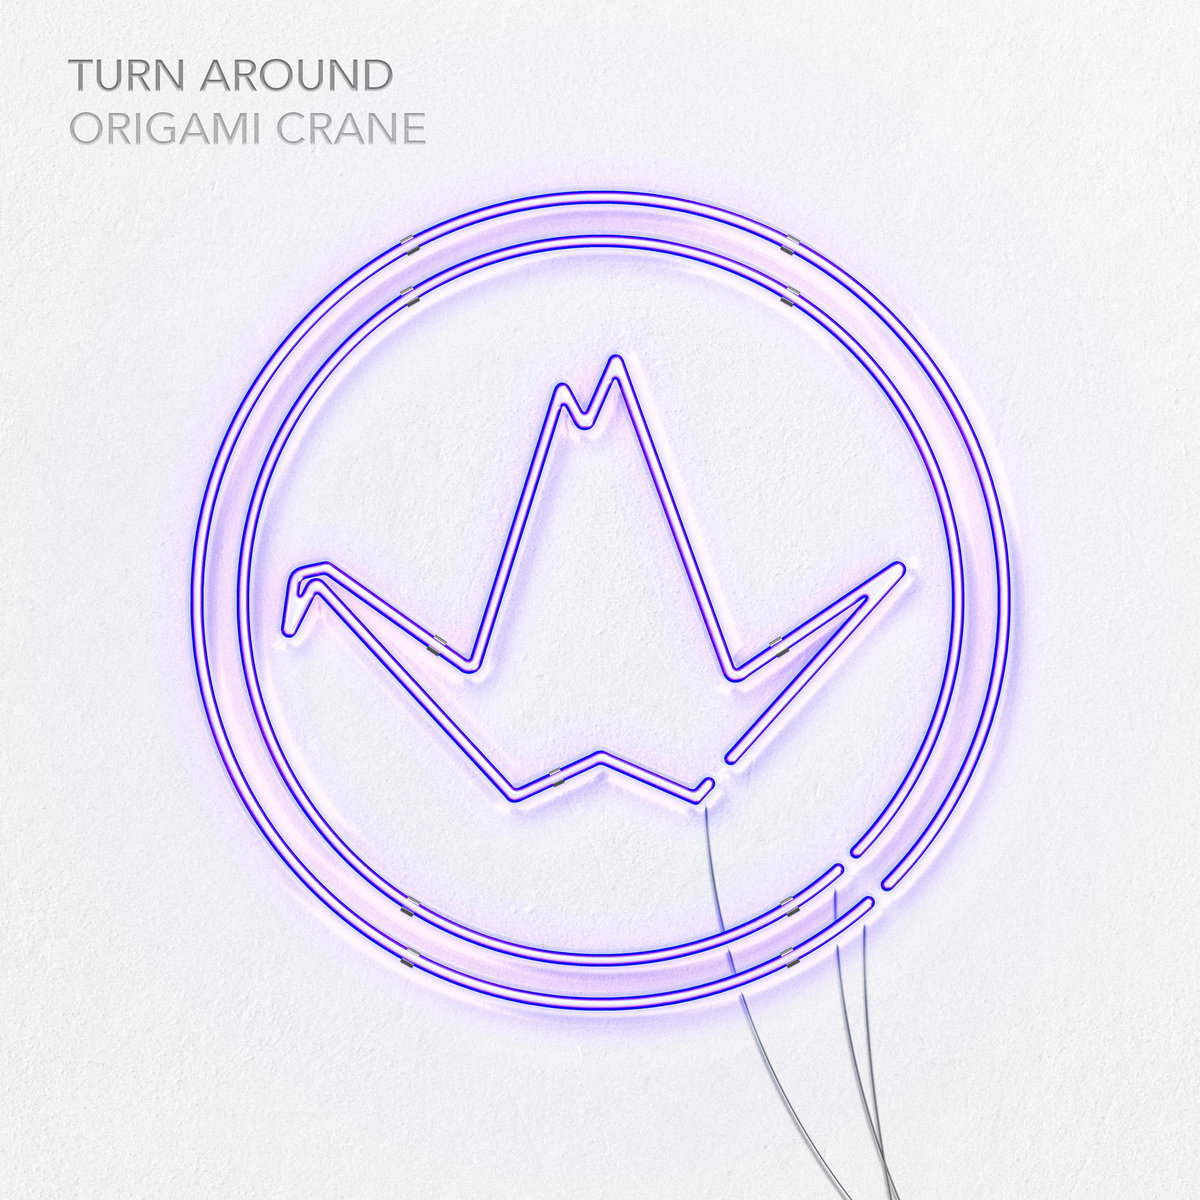 Turn Around by Origami Crane